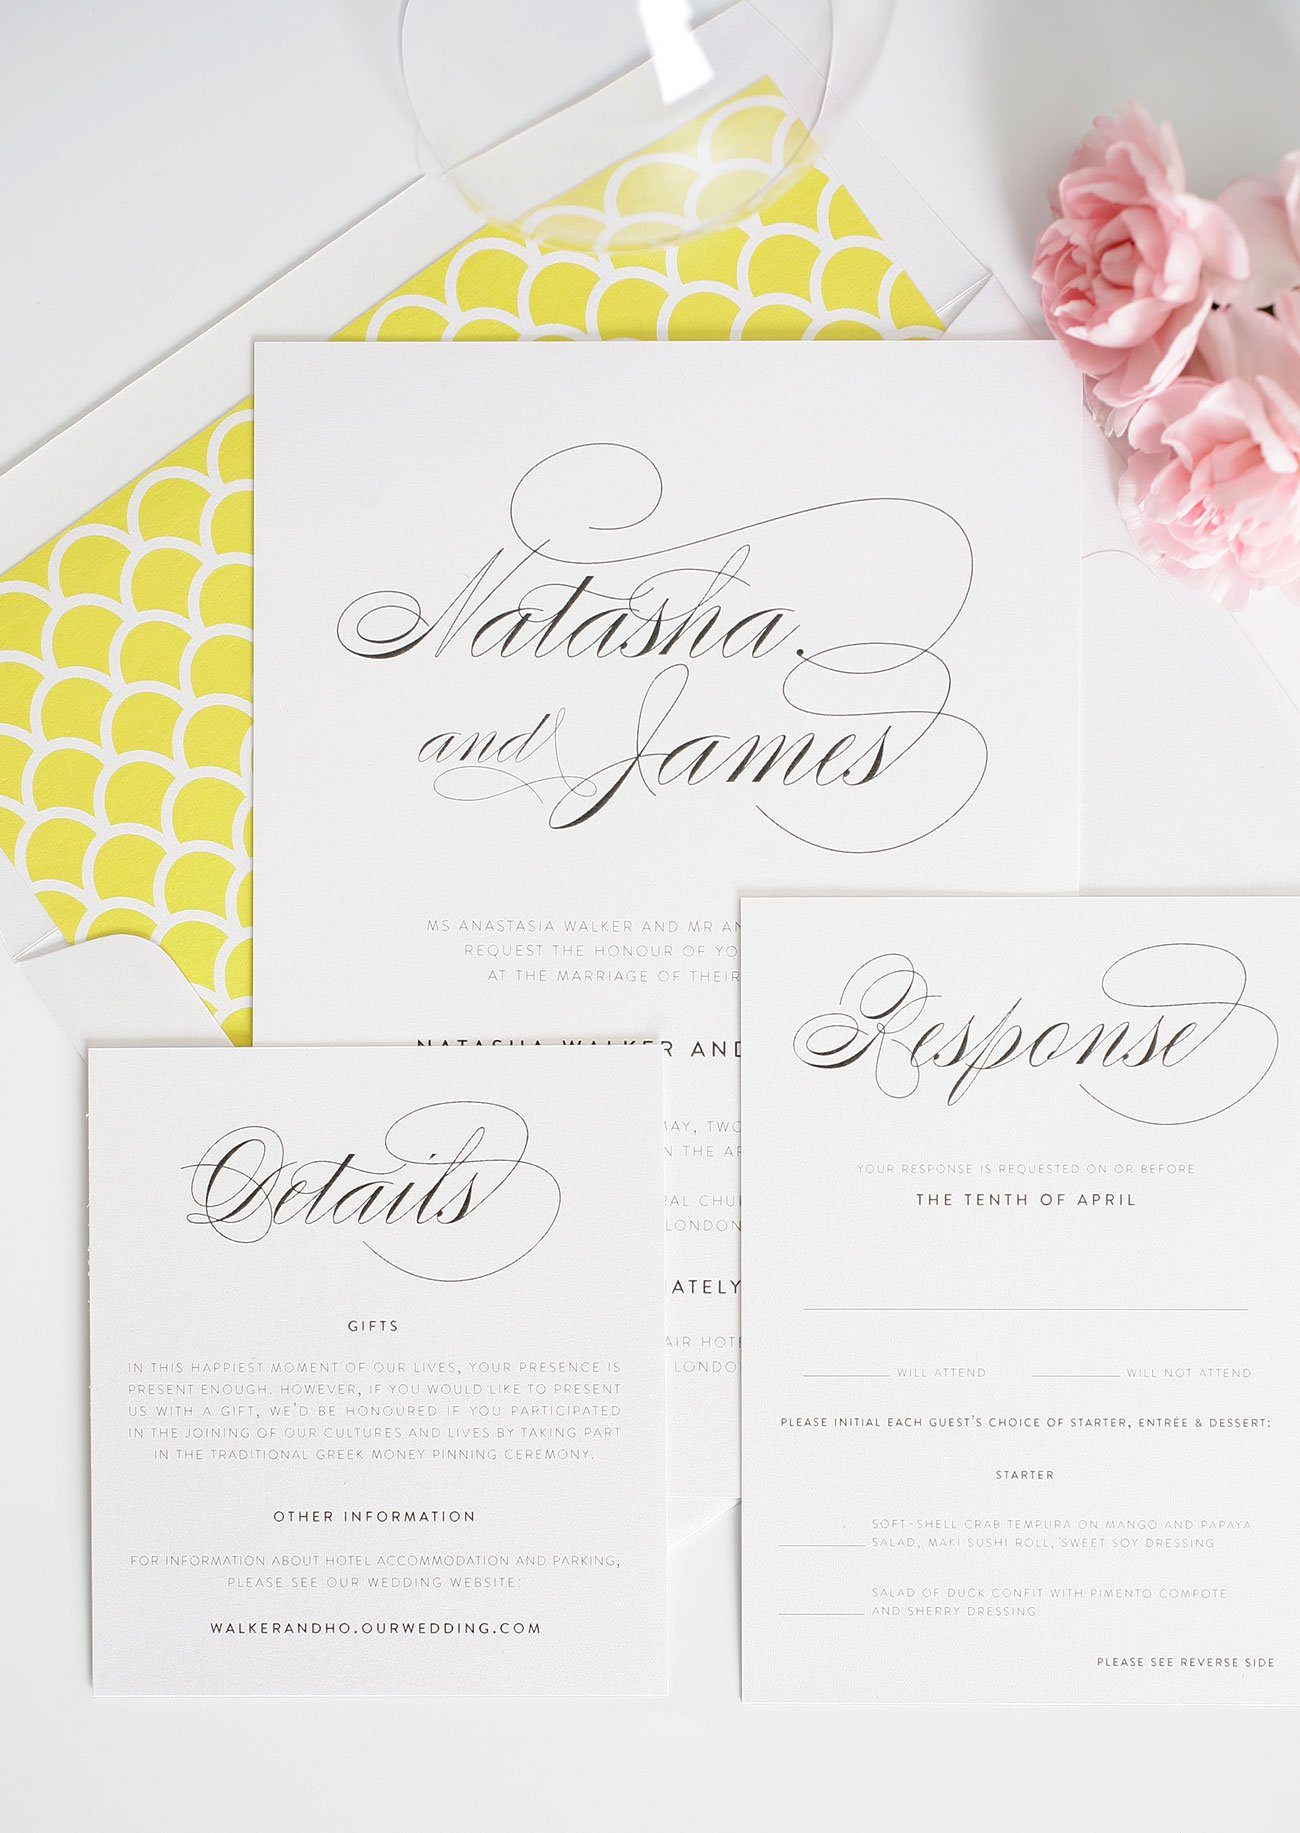 Simple wedding invitations with yellow script